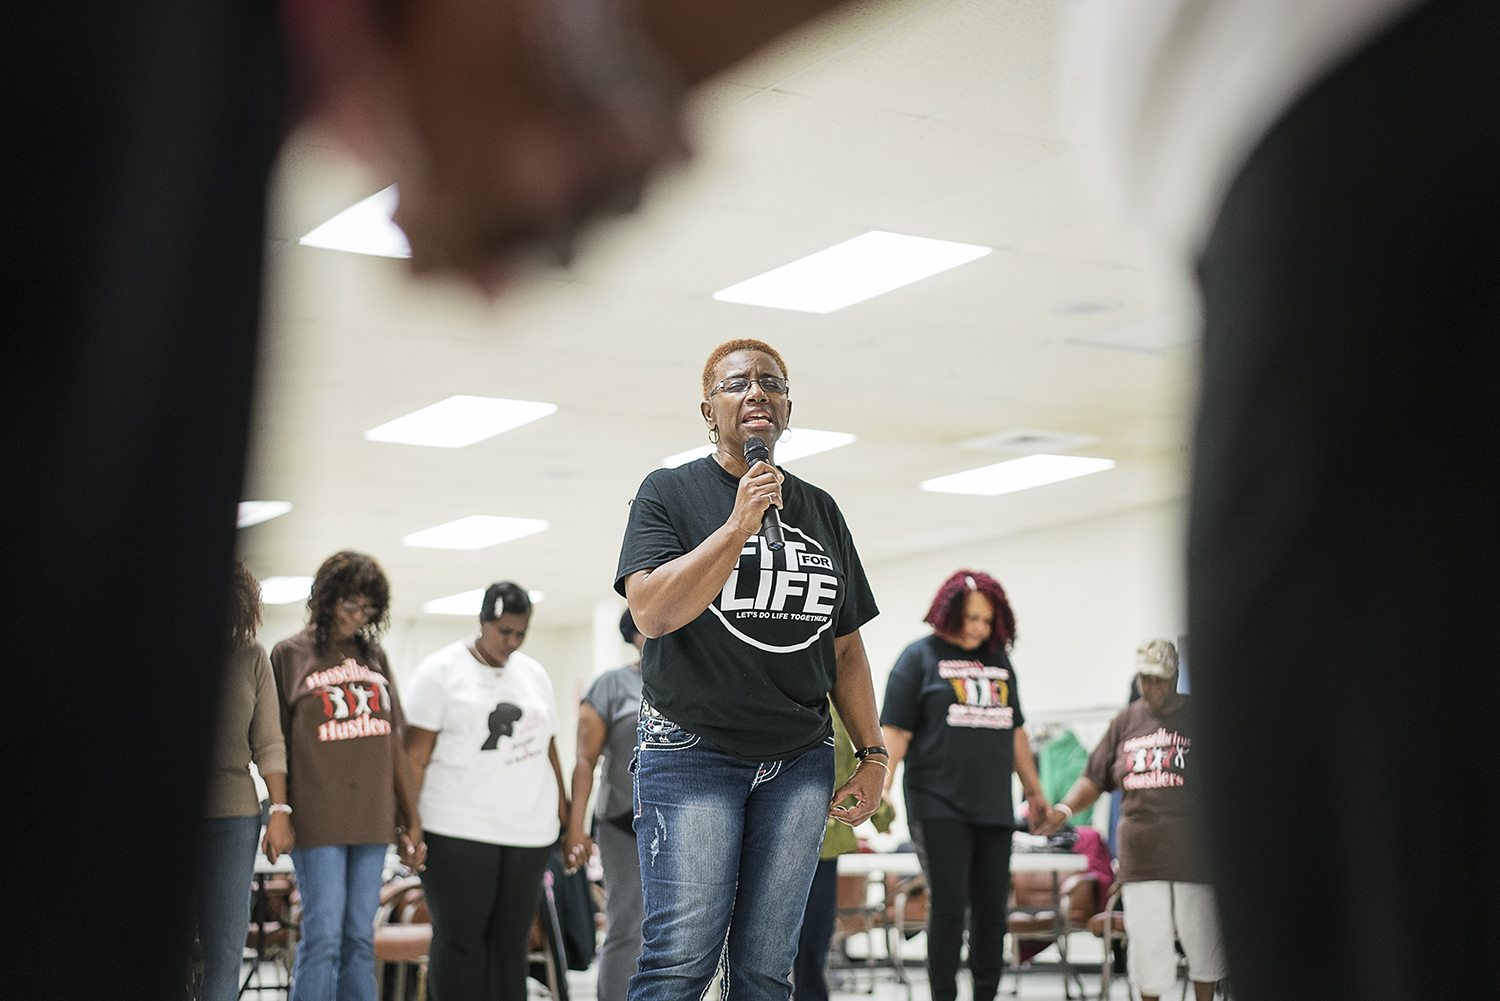 Flint, MI - Tuesday, October 24, 2017: Flint resident Queenella McGee, 66, leads the Hasselbring Hustlers in prayer before they finish their dancing for the day at the Hasselbring Senior Community Center. McGee, on her first day back from a hiatus from the Hustlers, was excited to be back dancing and active with the community.